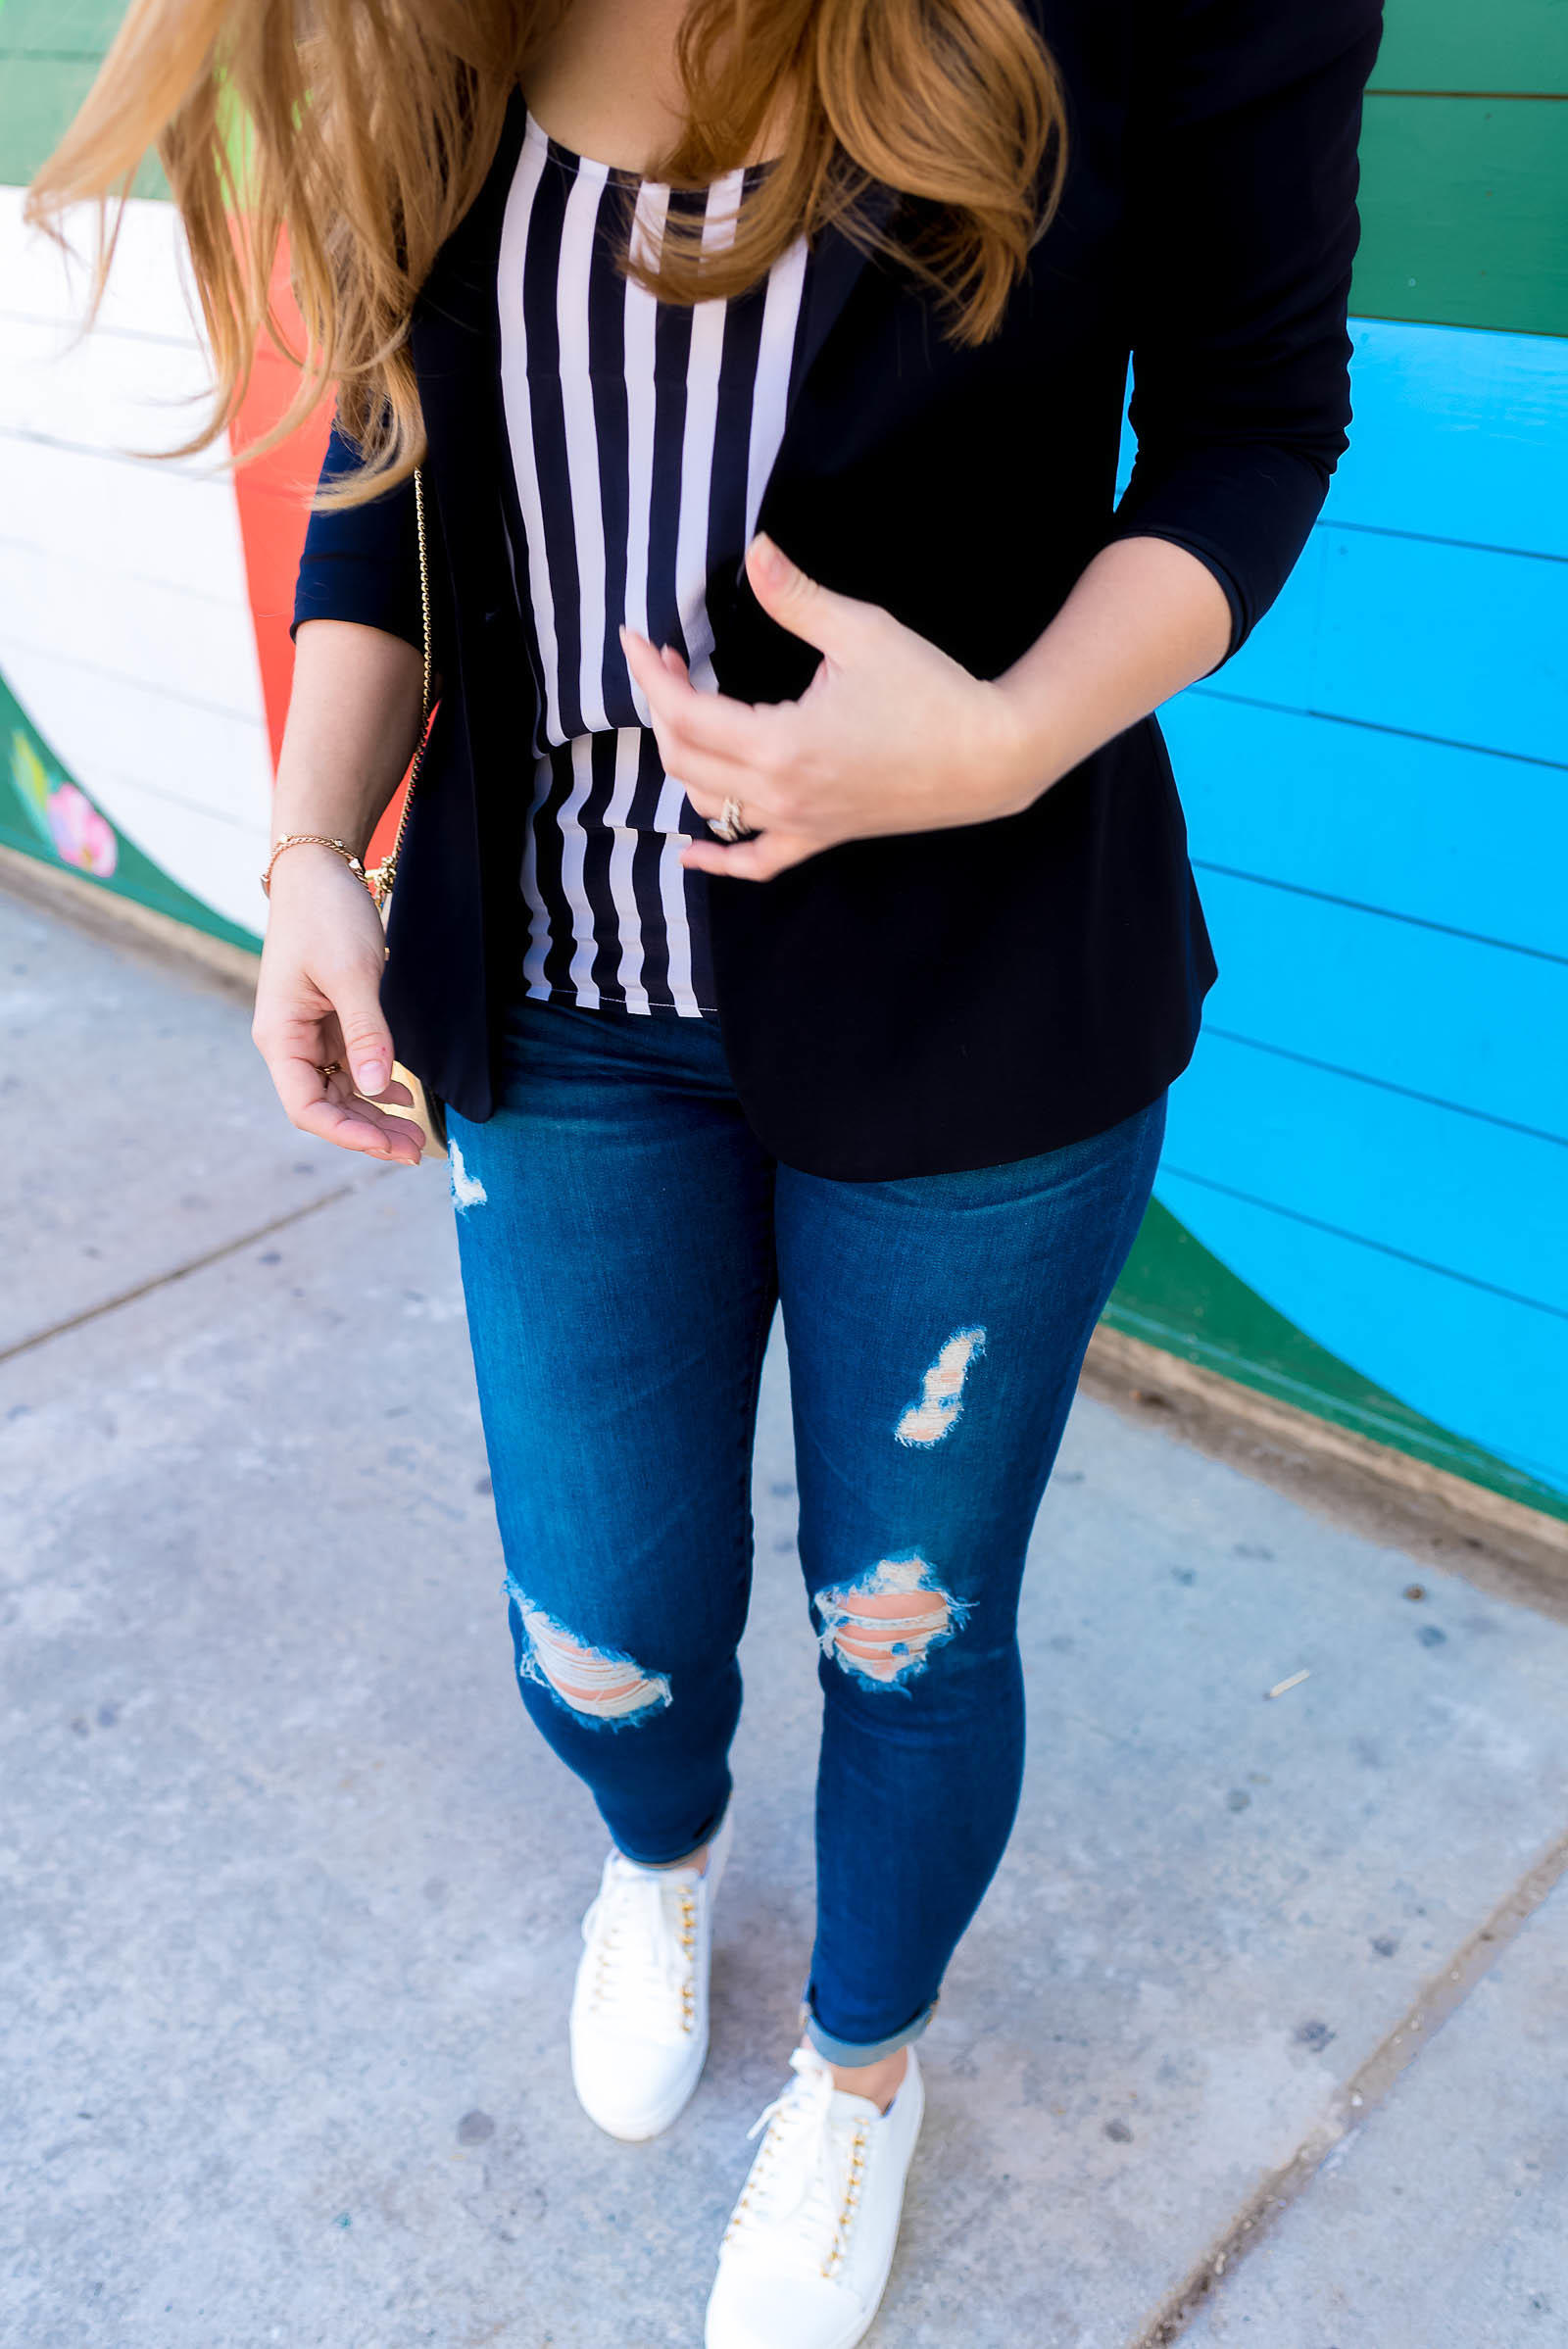 AG Legging Jeans Chloe Drew Bag Striped Outfit